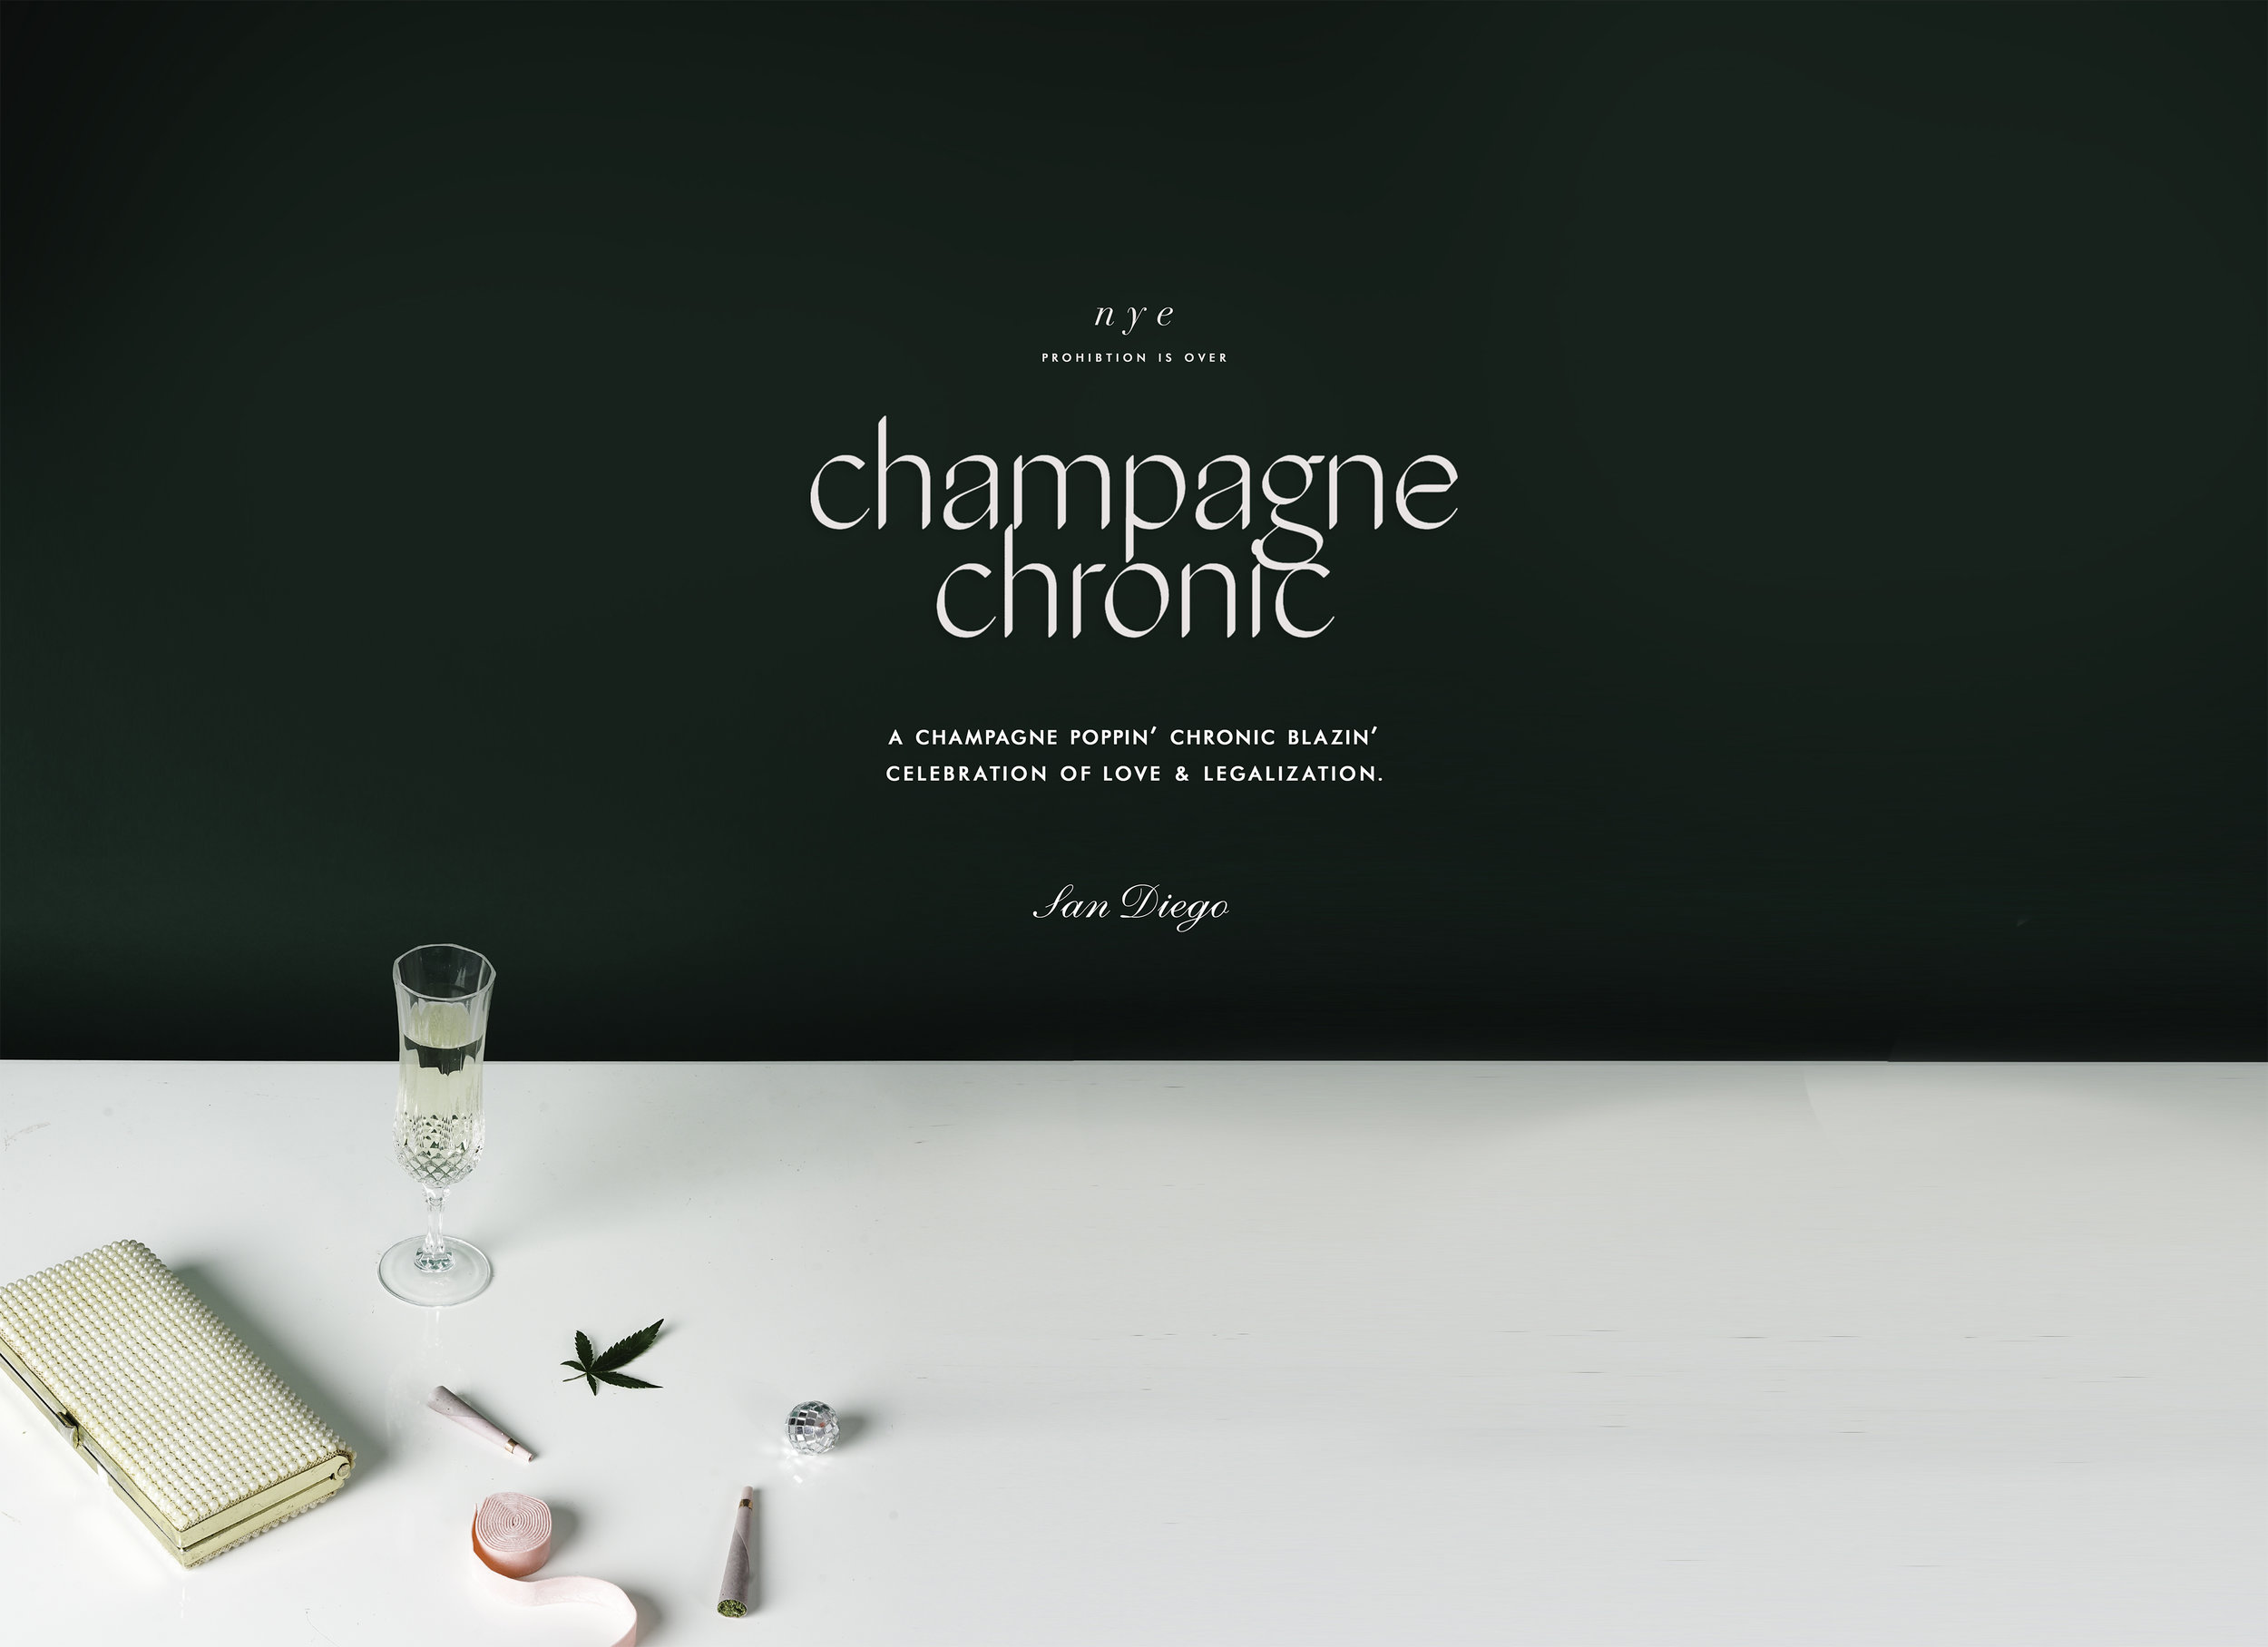 champagne chronic herbal notes field guide art direction photography San Diego